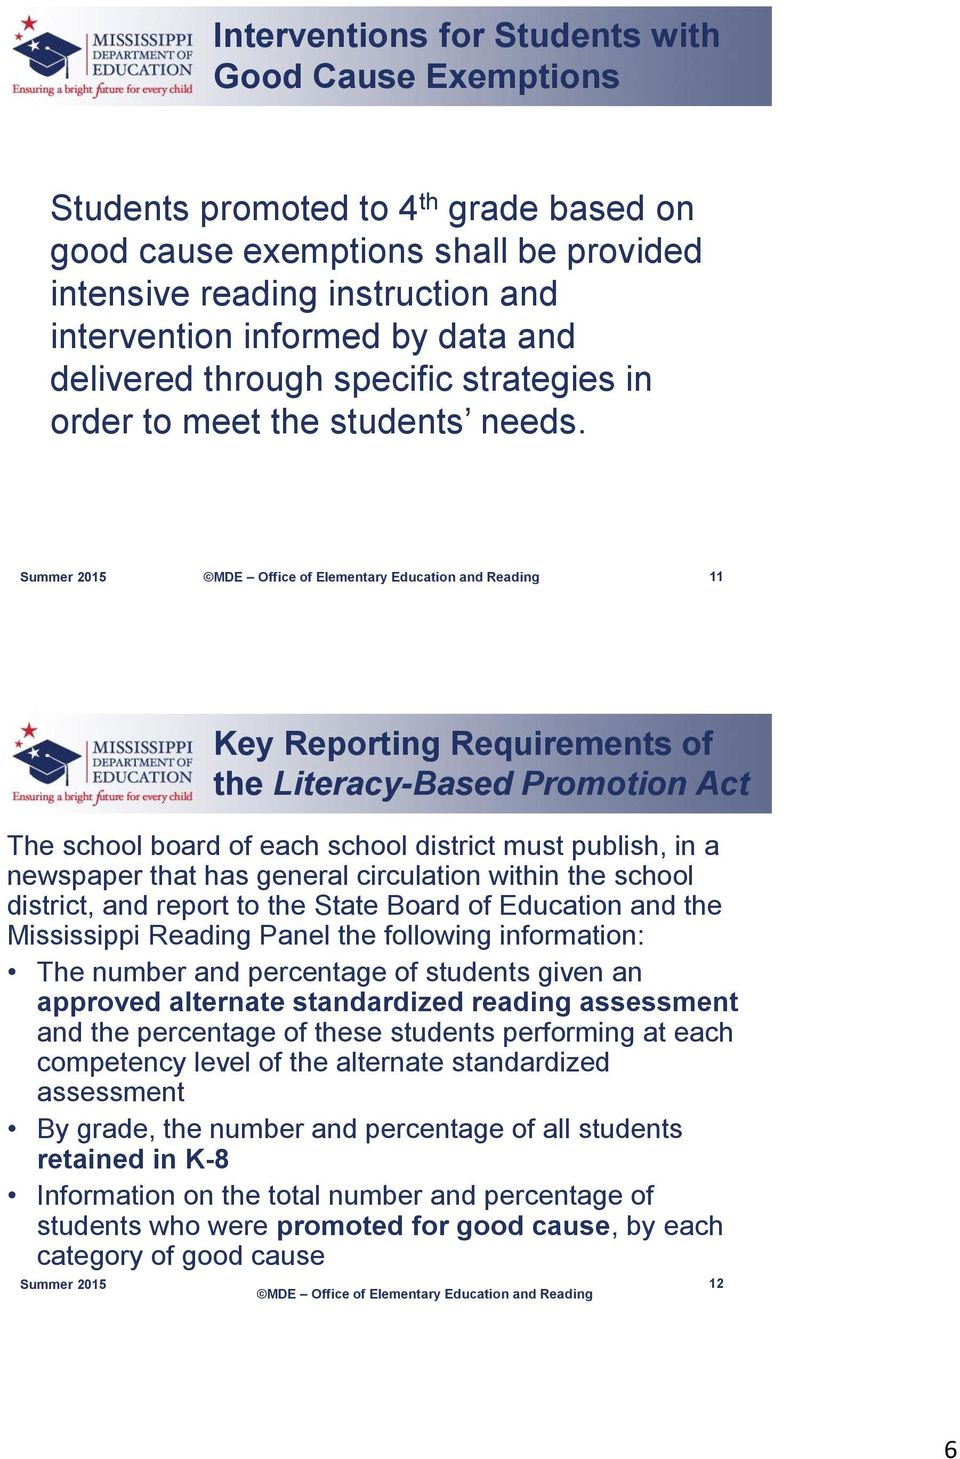 11 The school board of each school district must publish, in a newspaper that has general circulation within the school district, and report to the State Board of Education and the Mississippi